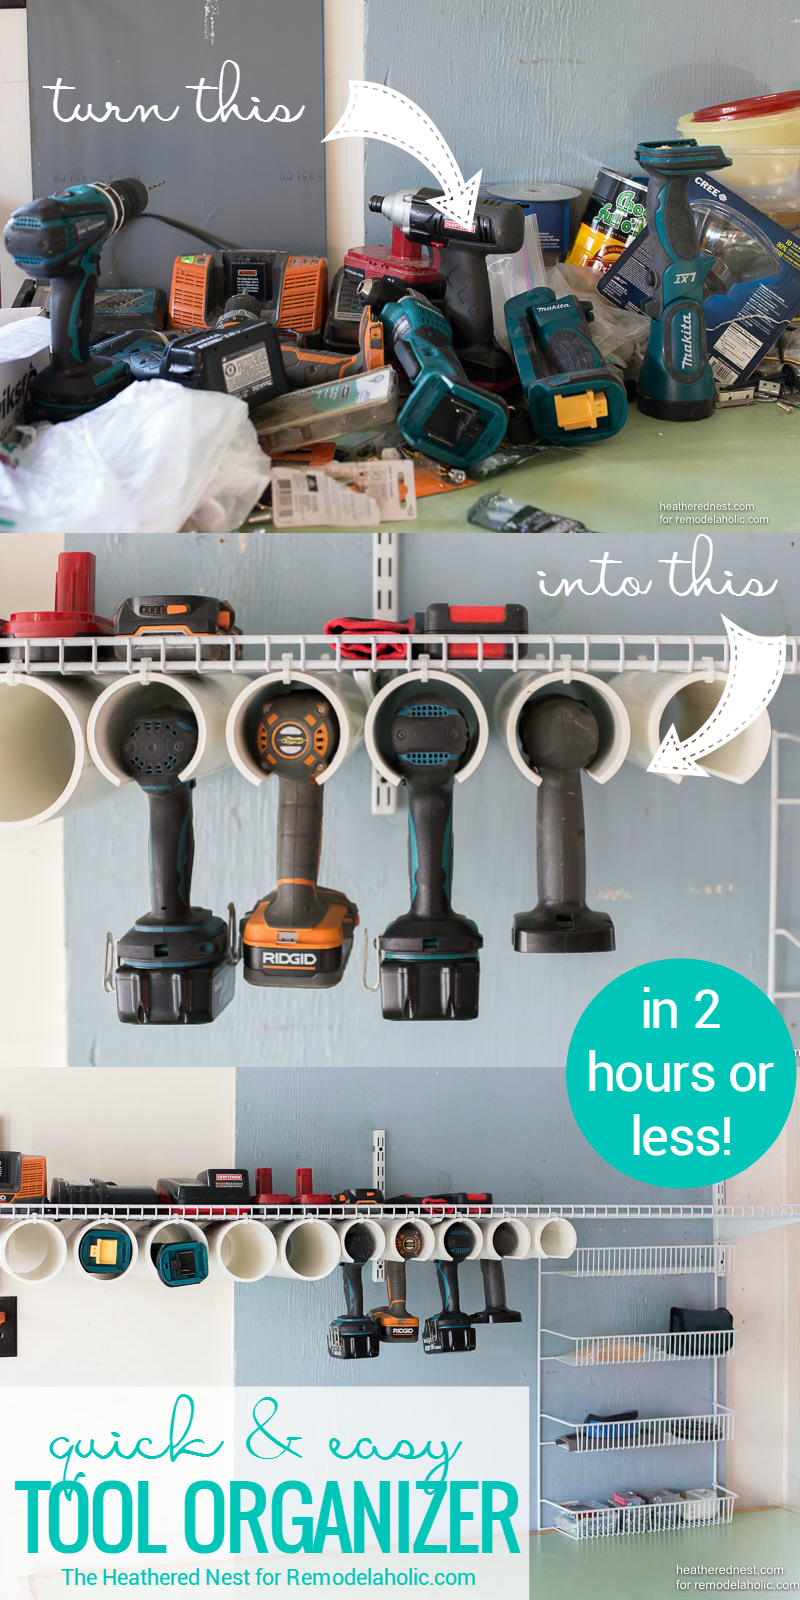 Diy power tool organizer quick and easy tutorial remodelaholic diy power tool organizer quick and easy tutorial remodelaholic solutioingenieria Image collections